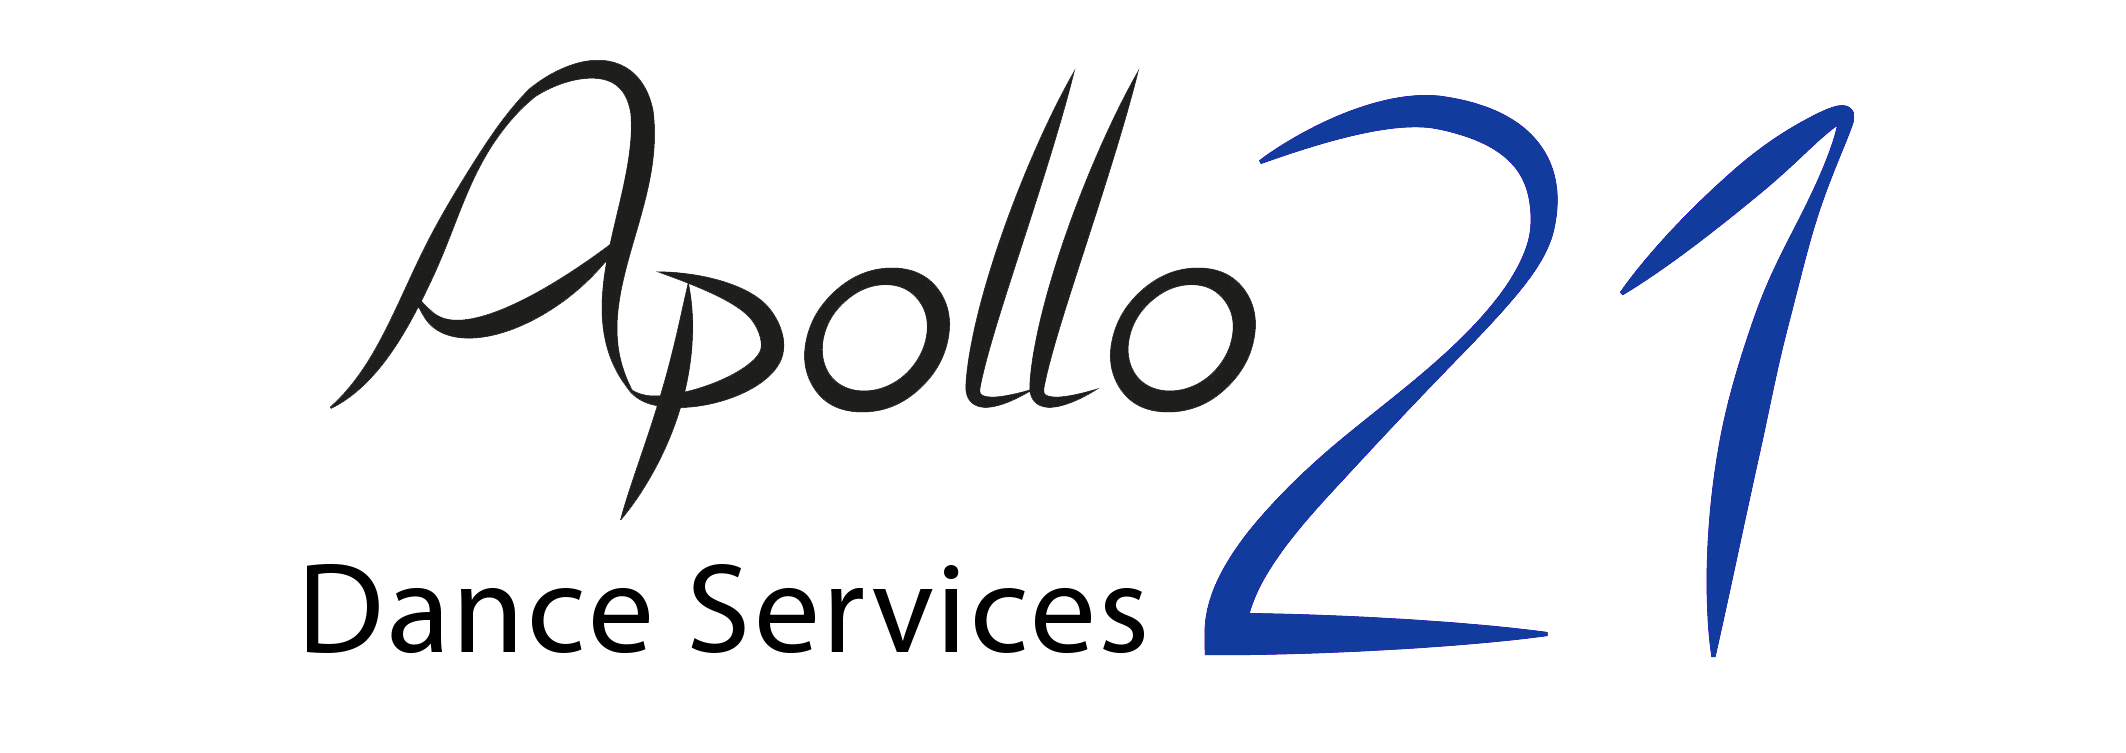 Apollo Dance Services | Impressum - Apollo Dance Services